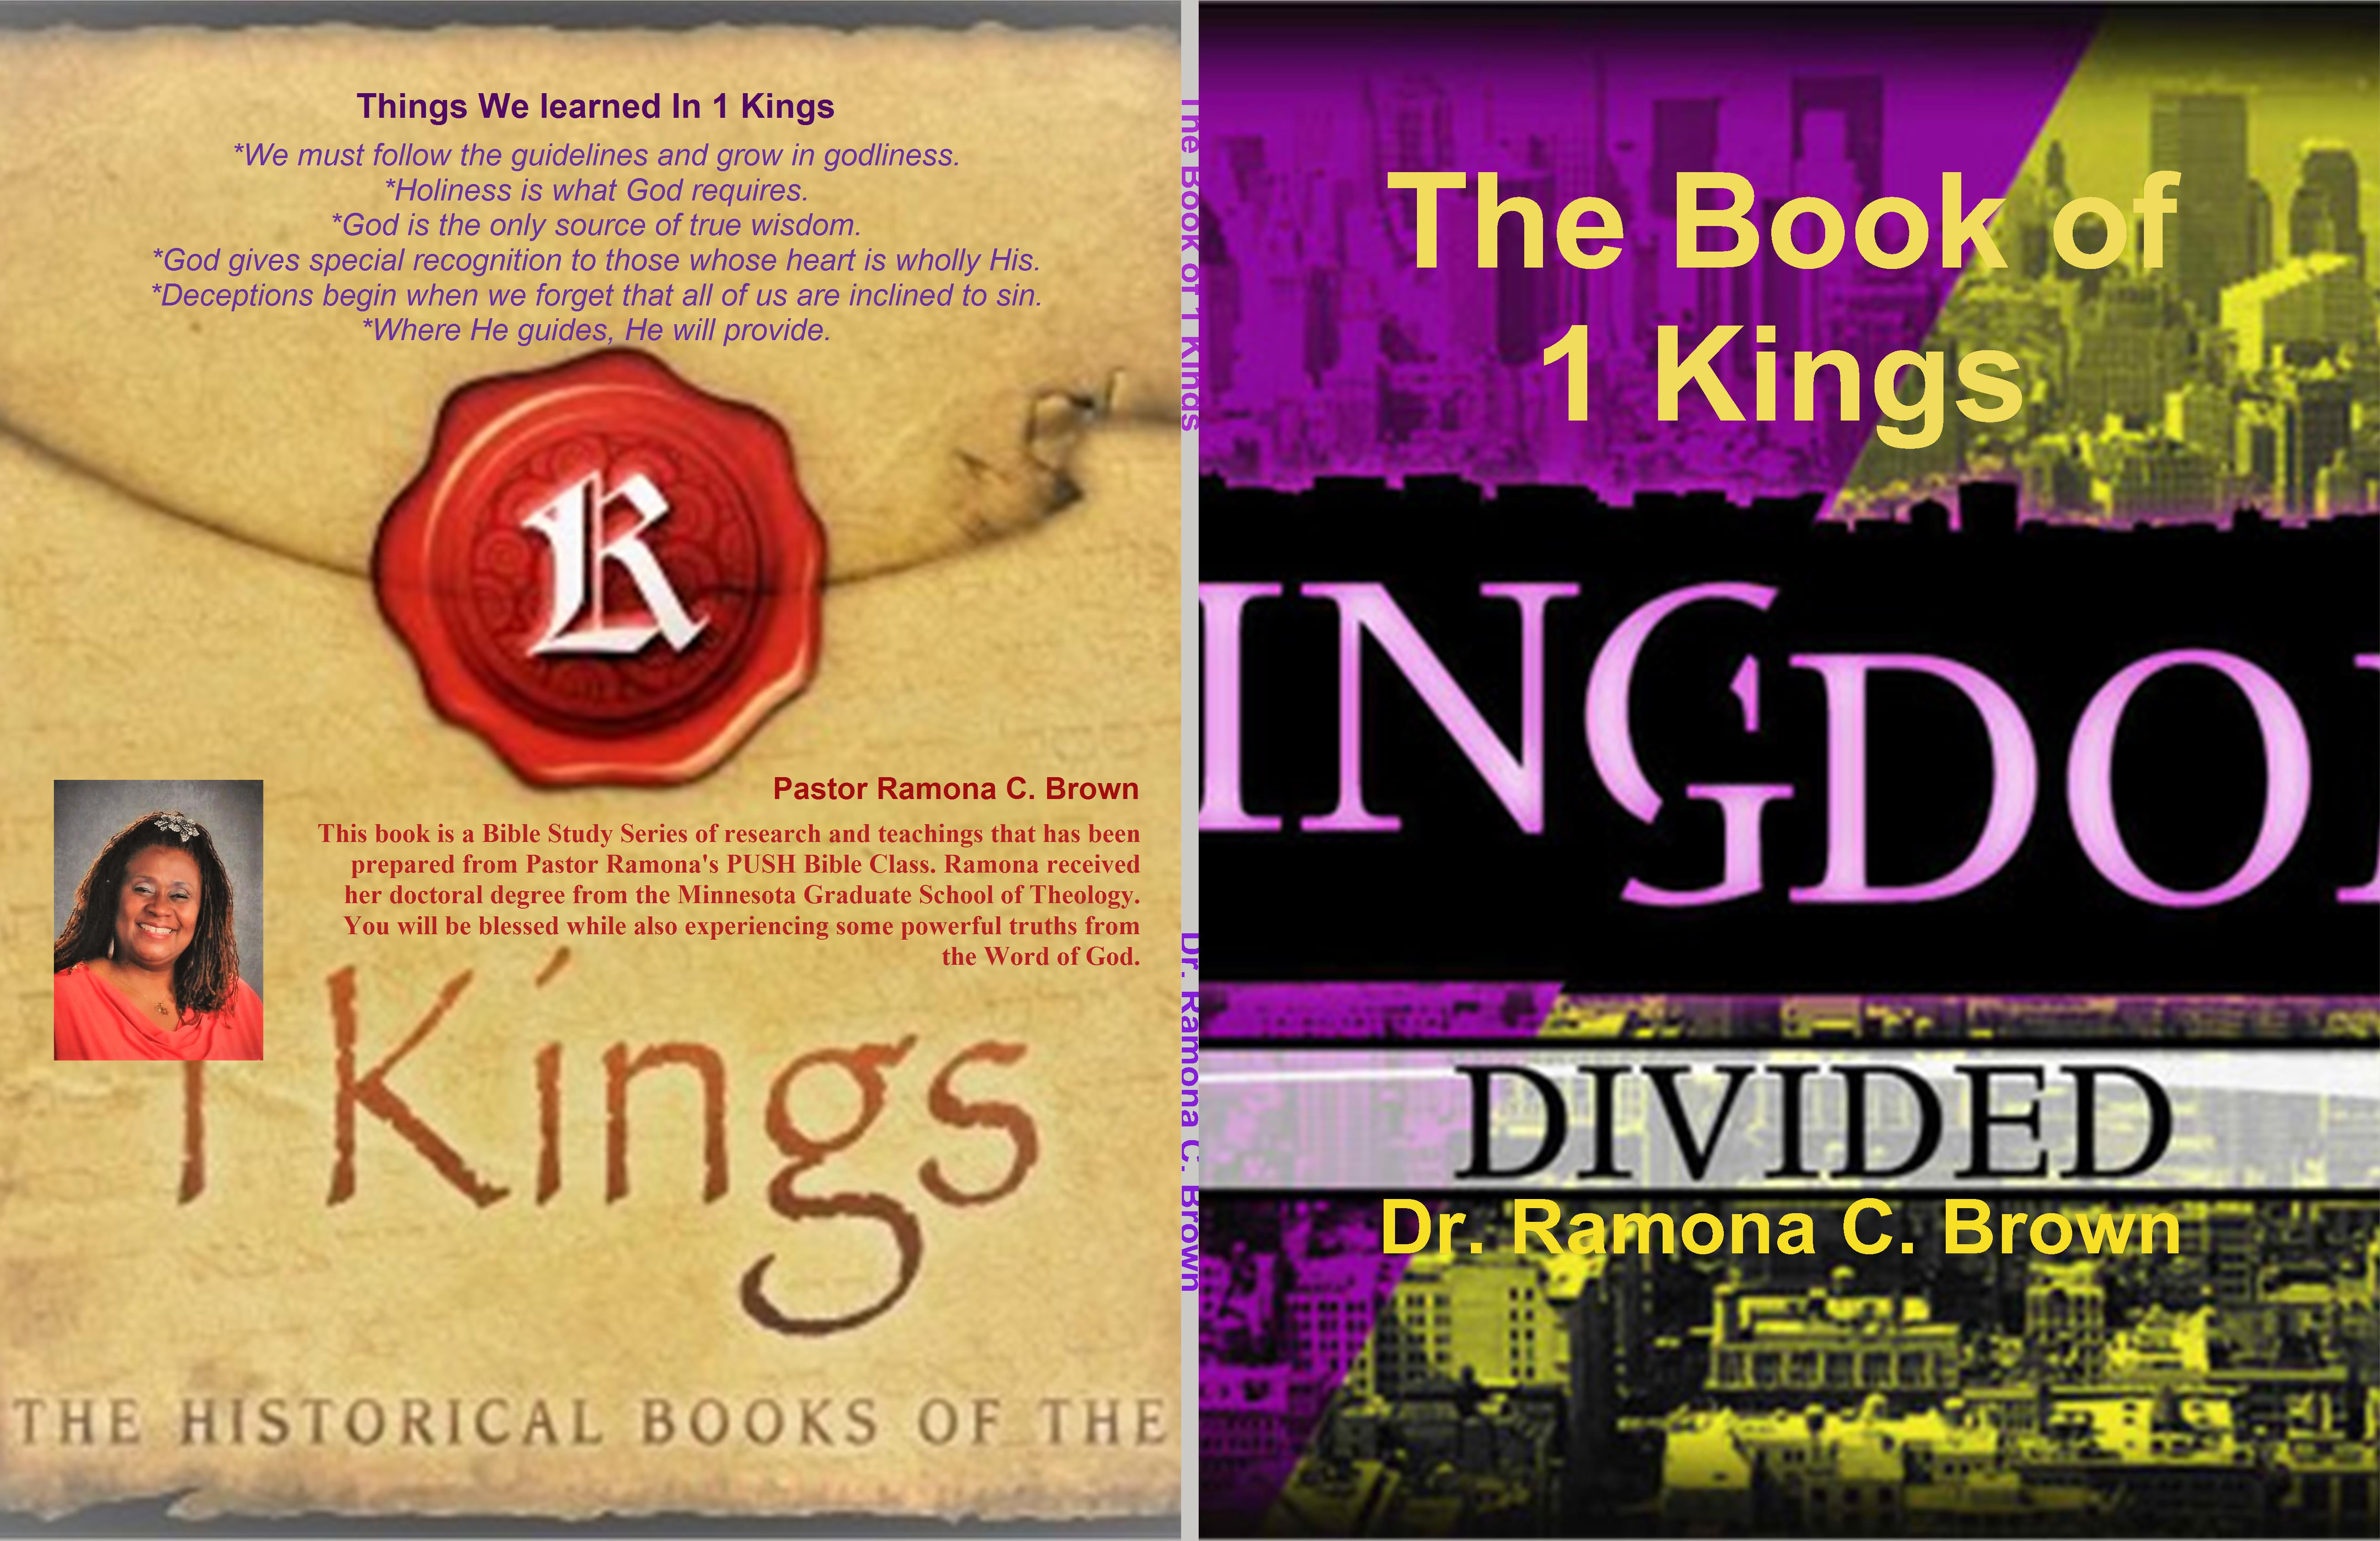 The Book of 1 Kings cover image